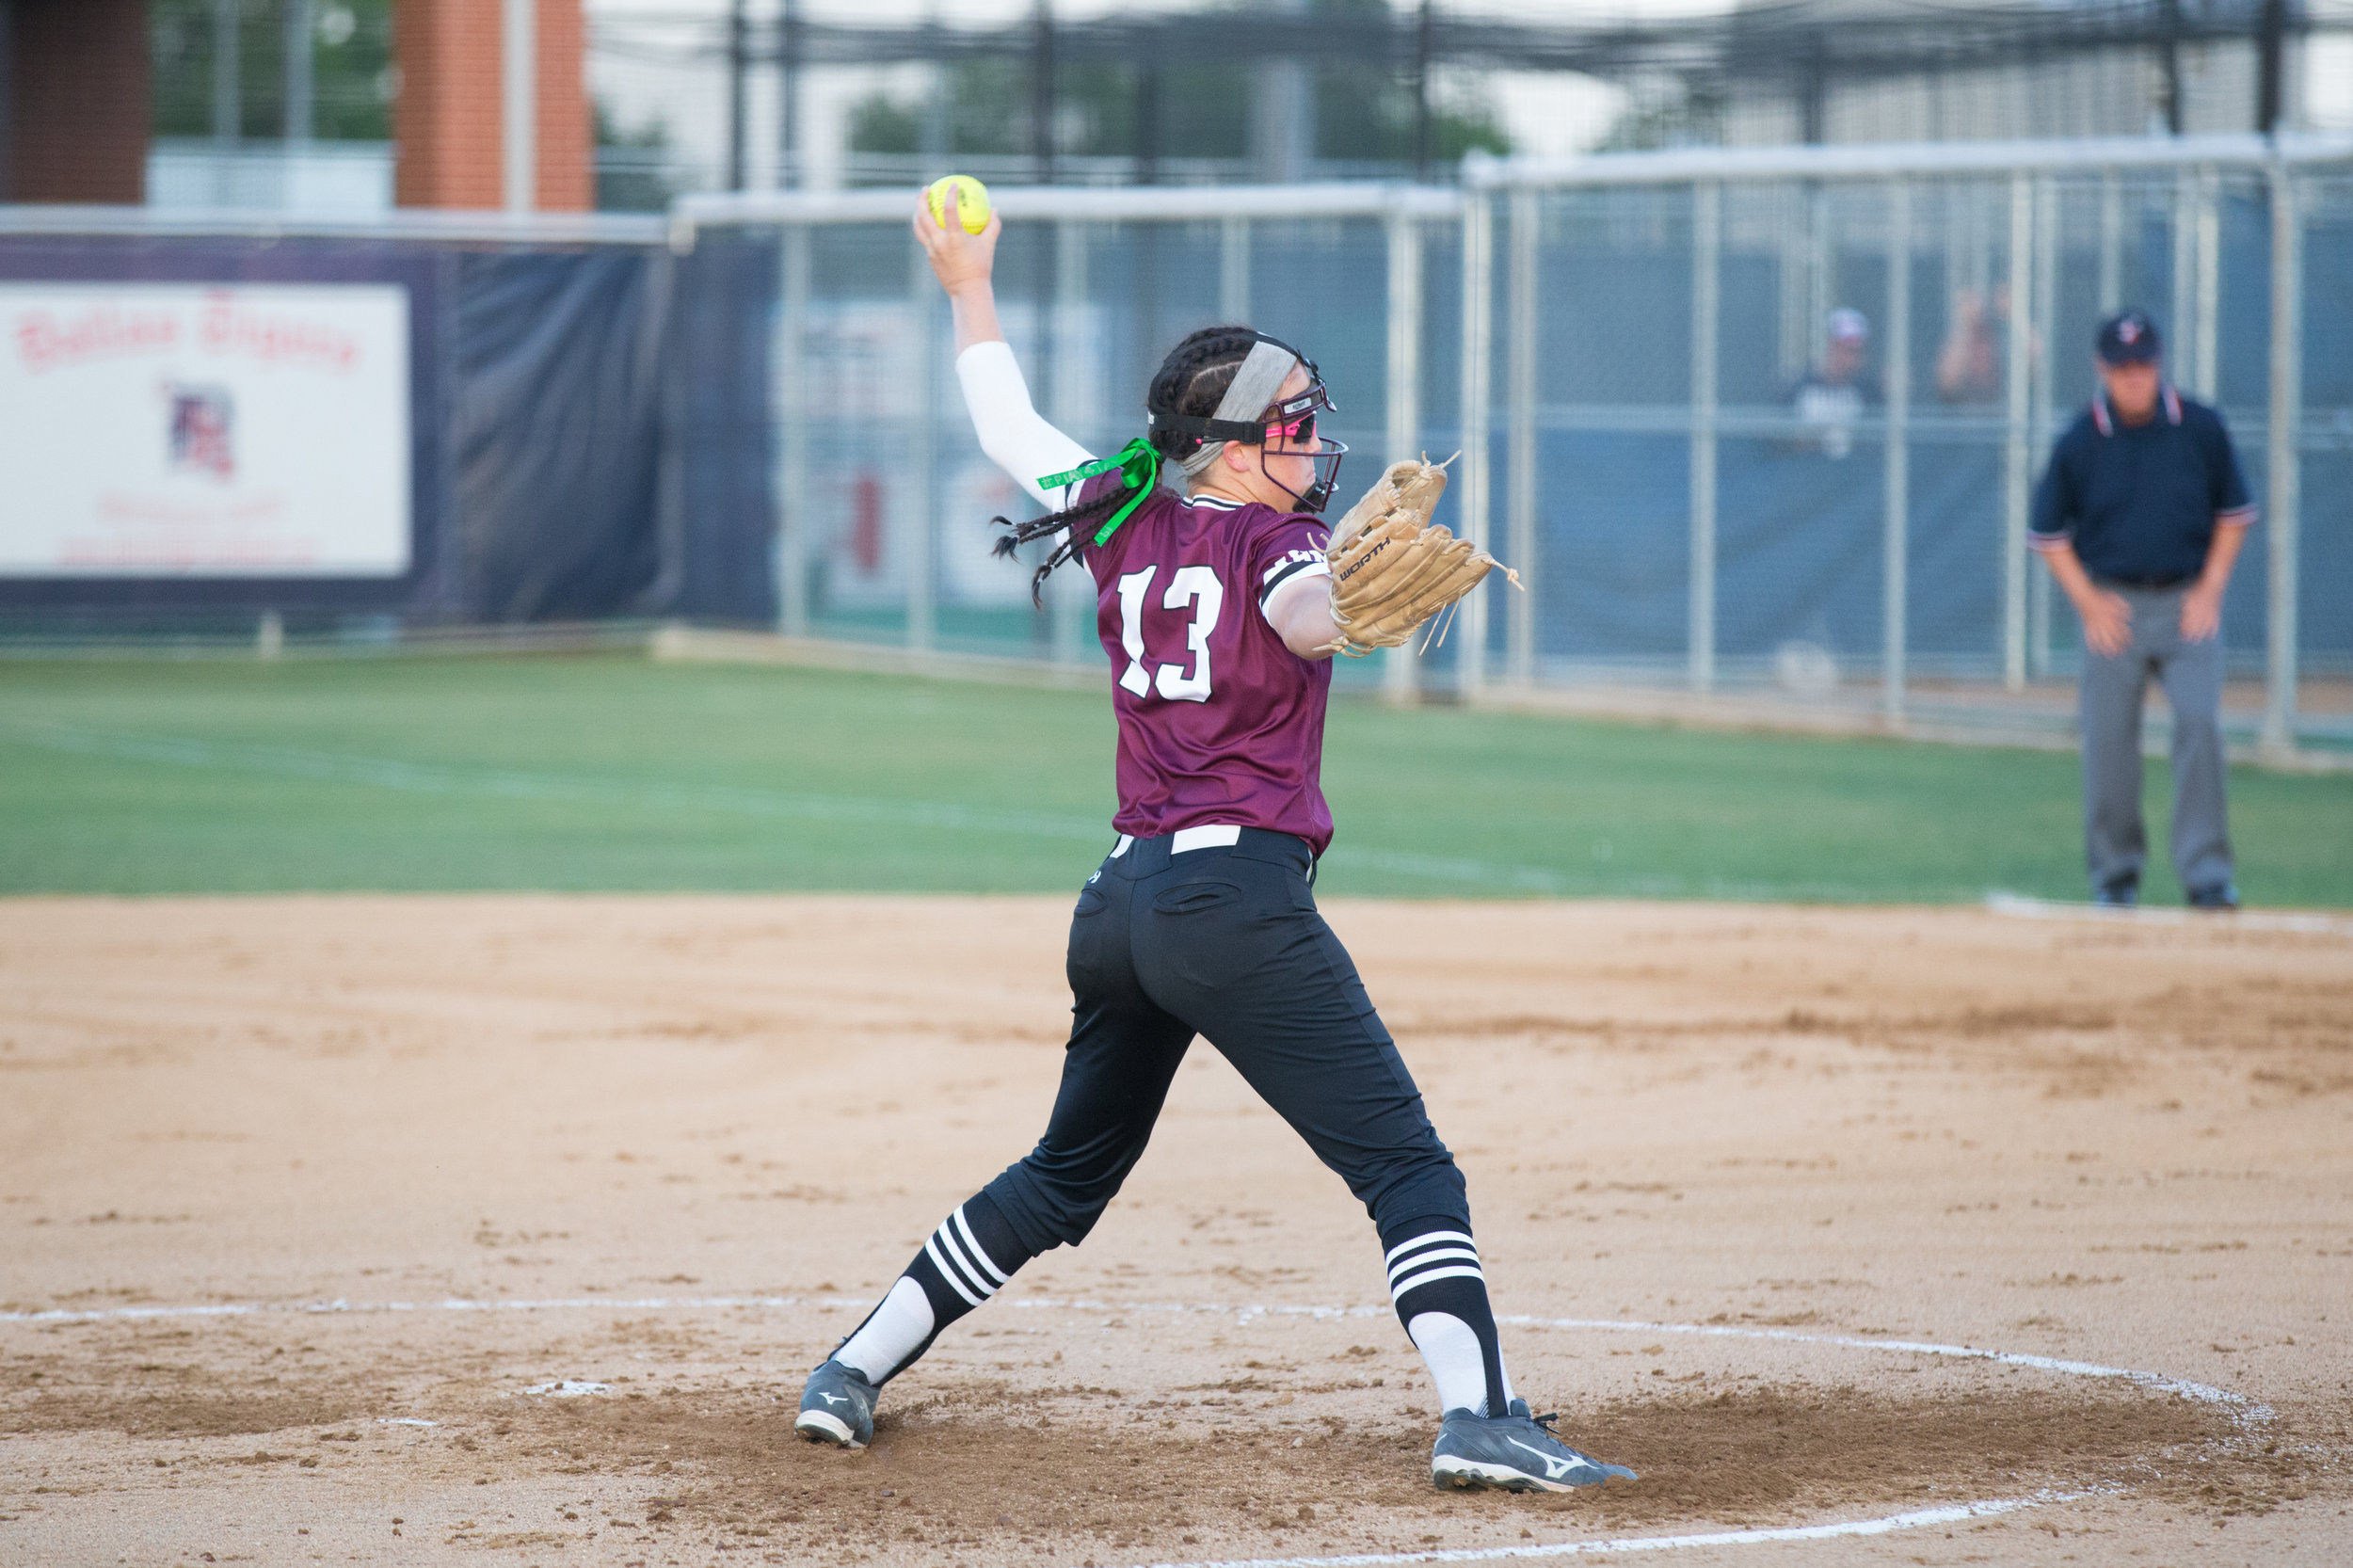 5_18 Wylie Softball-143.jpg